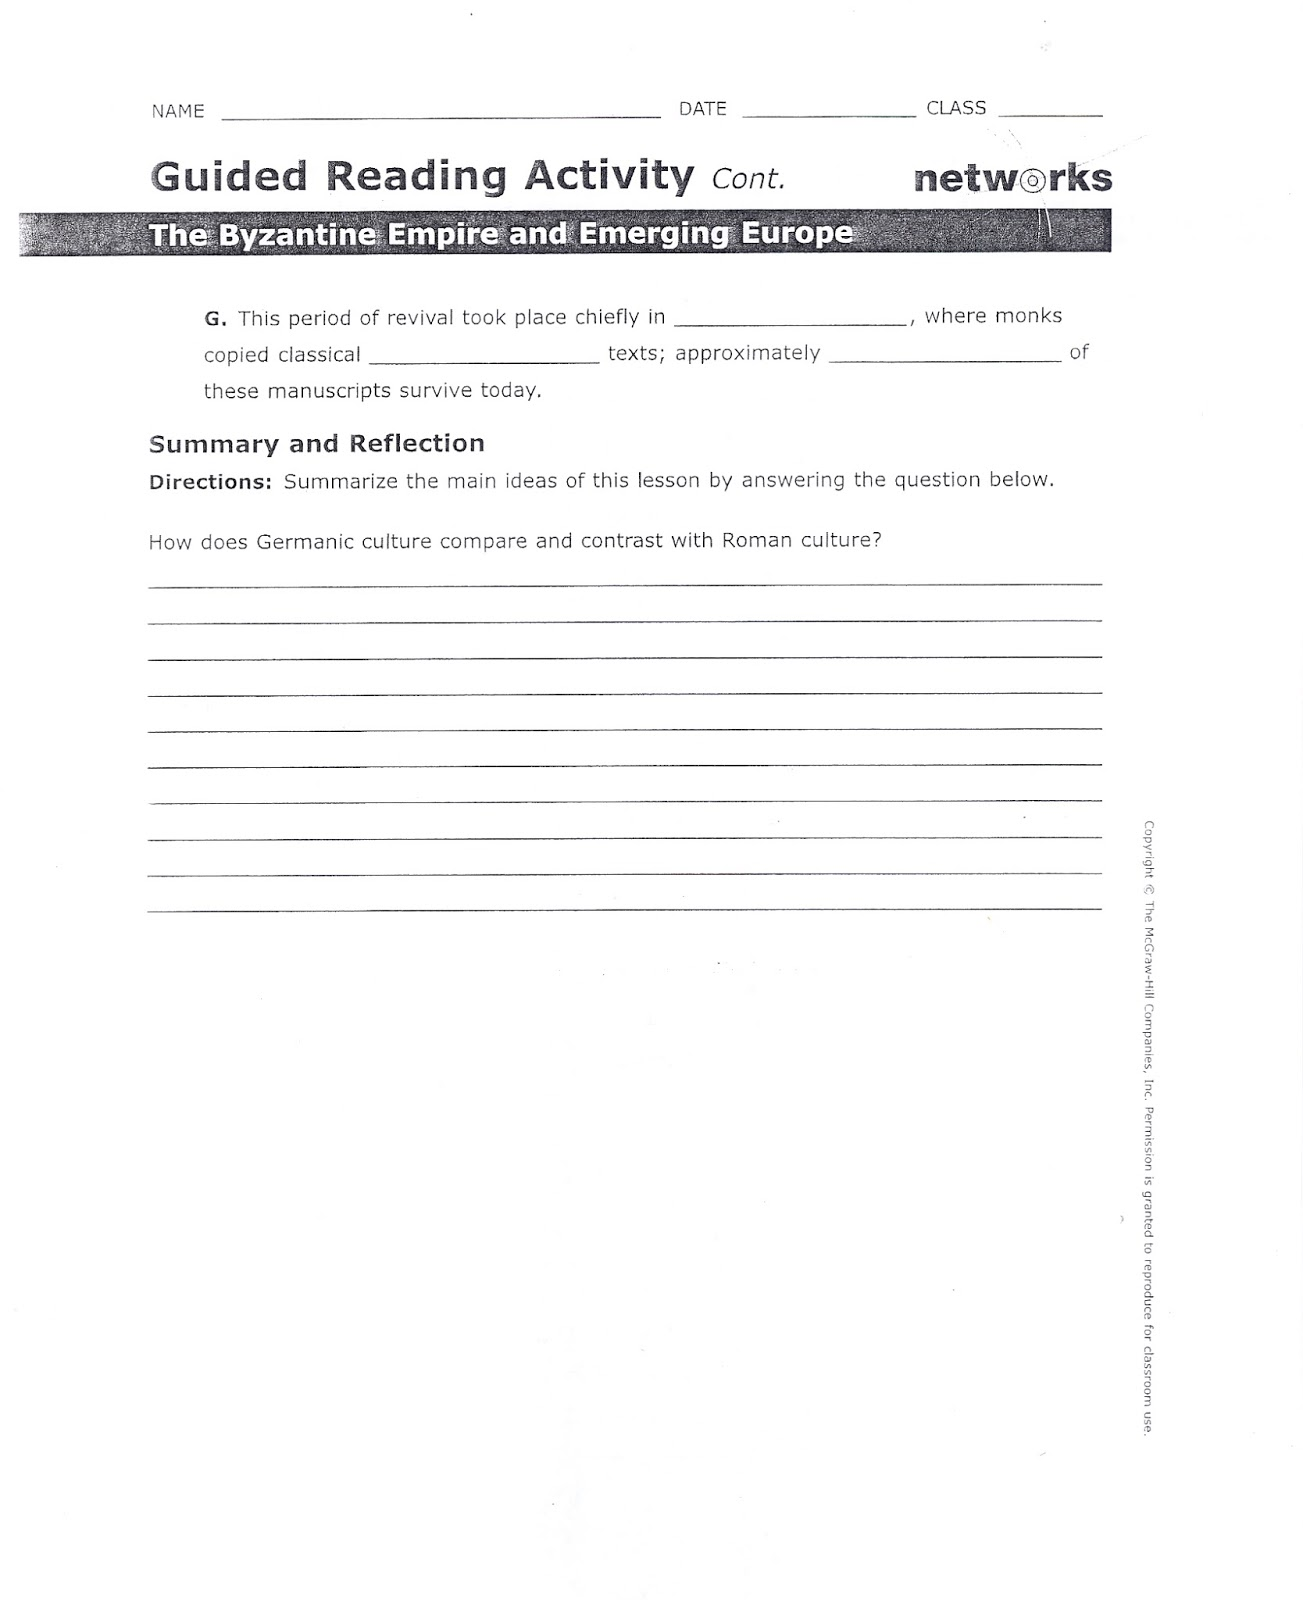 world history guided reading activity 19 1 answers product user rh repairmanualonline today mcgraw hill world history guided reading activity answers world history guided reading activity 12-3 answers